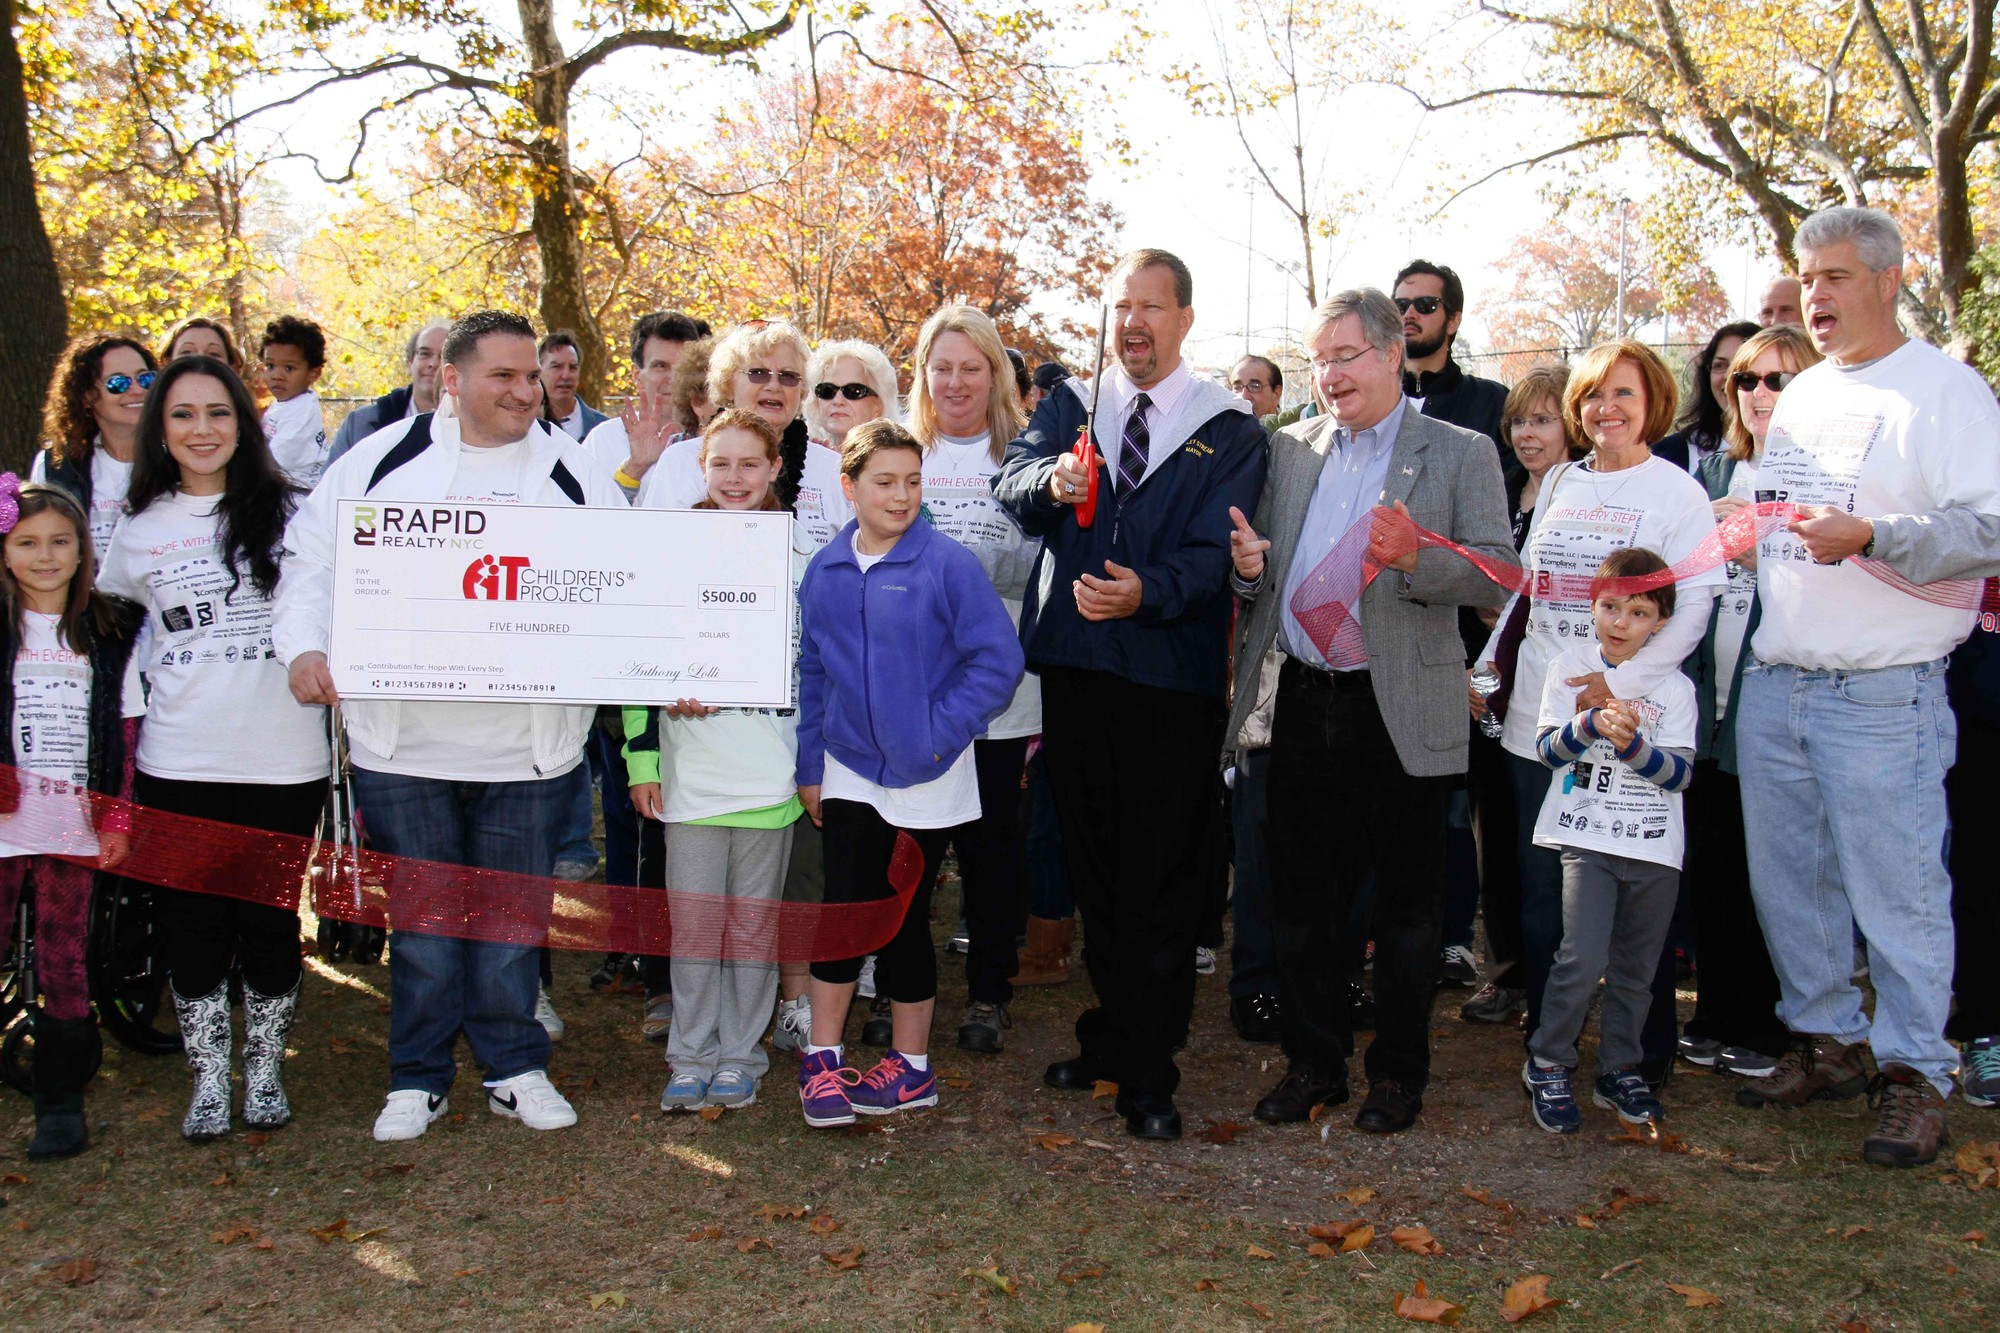 Mayor Ed Fare, along with Village Justice BobBogle, cut the ribbon to kick off the third annual Hope With Every Step fundraiser at Hendrickson Park on Nov. 2.